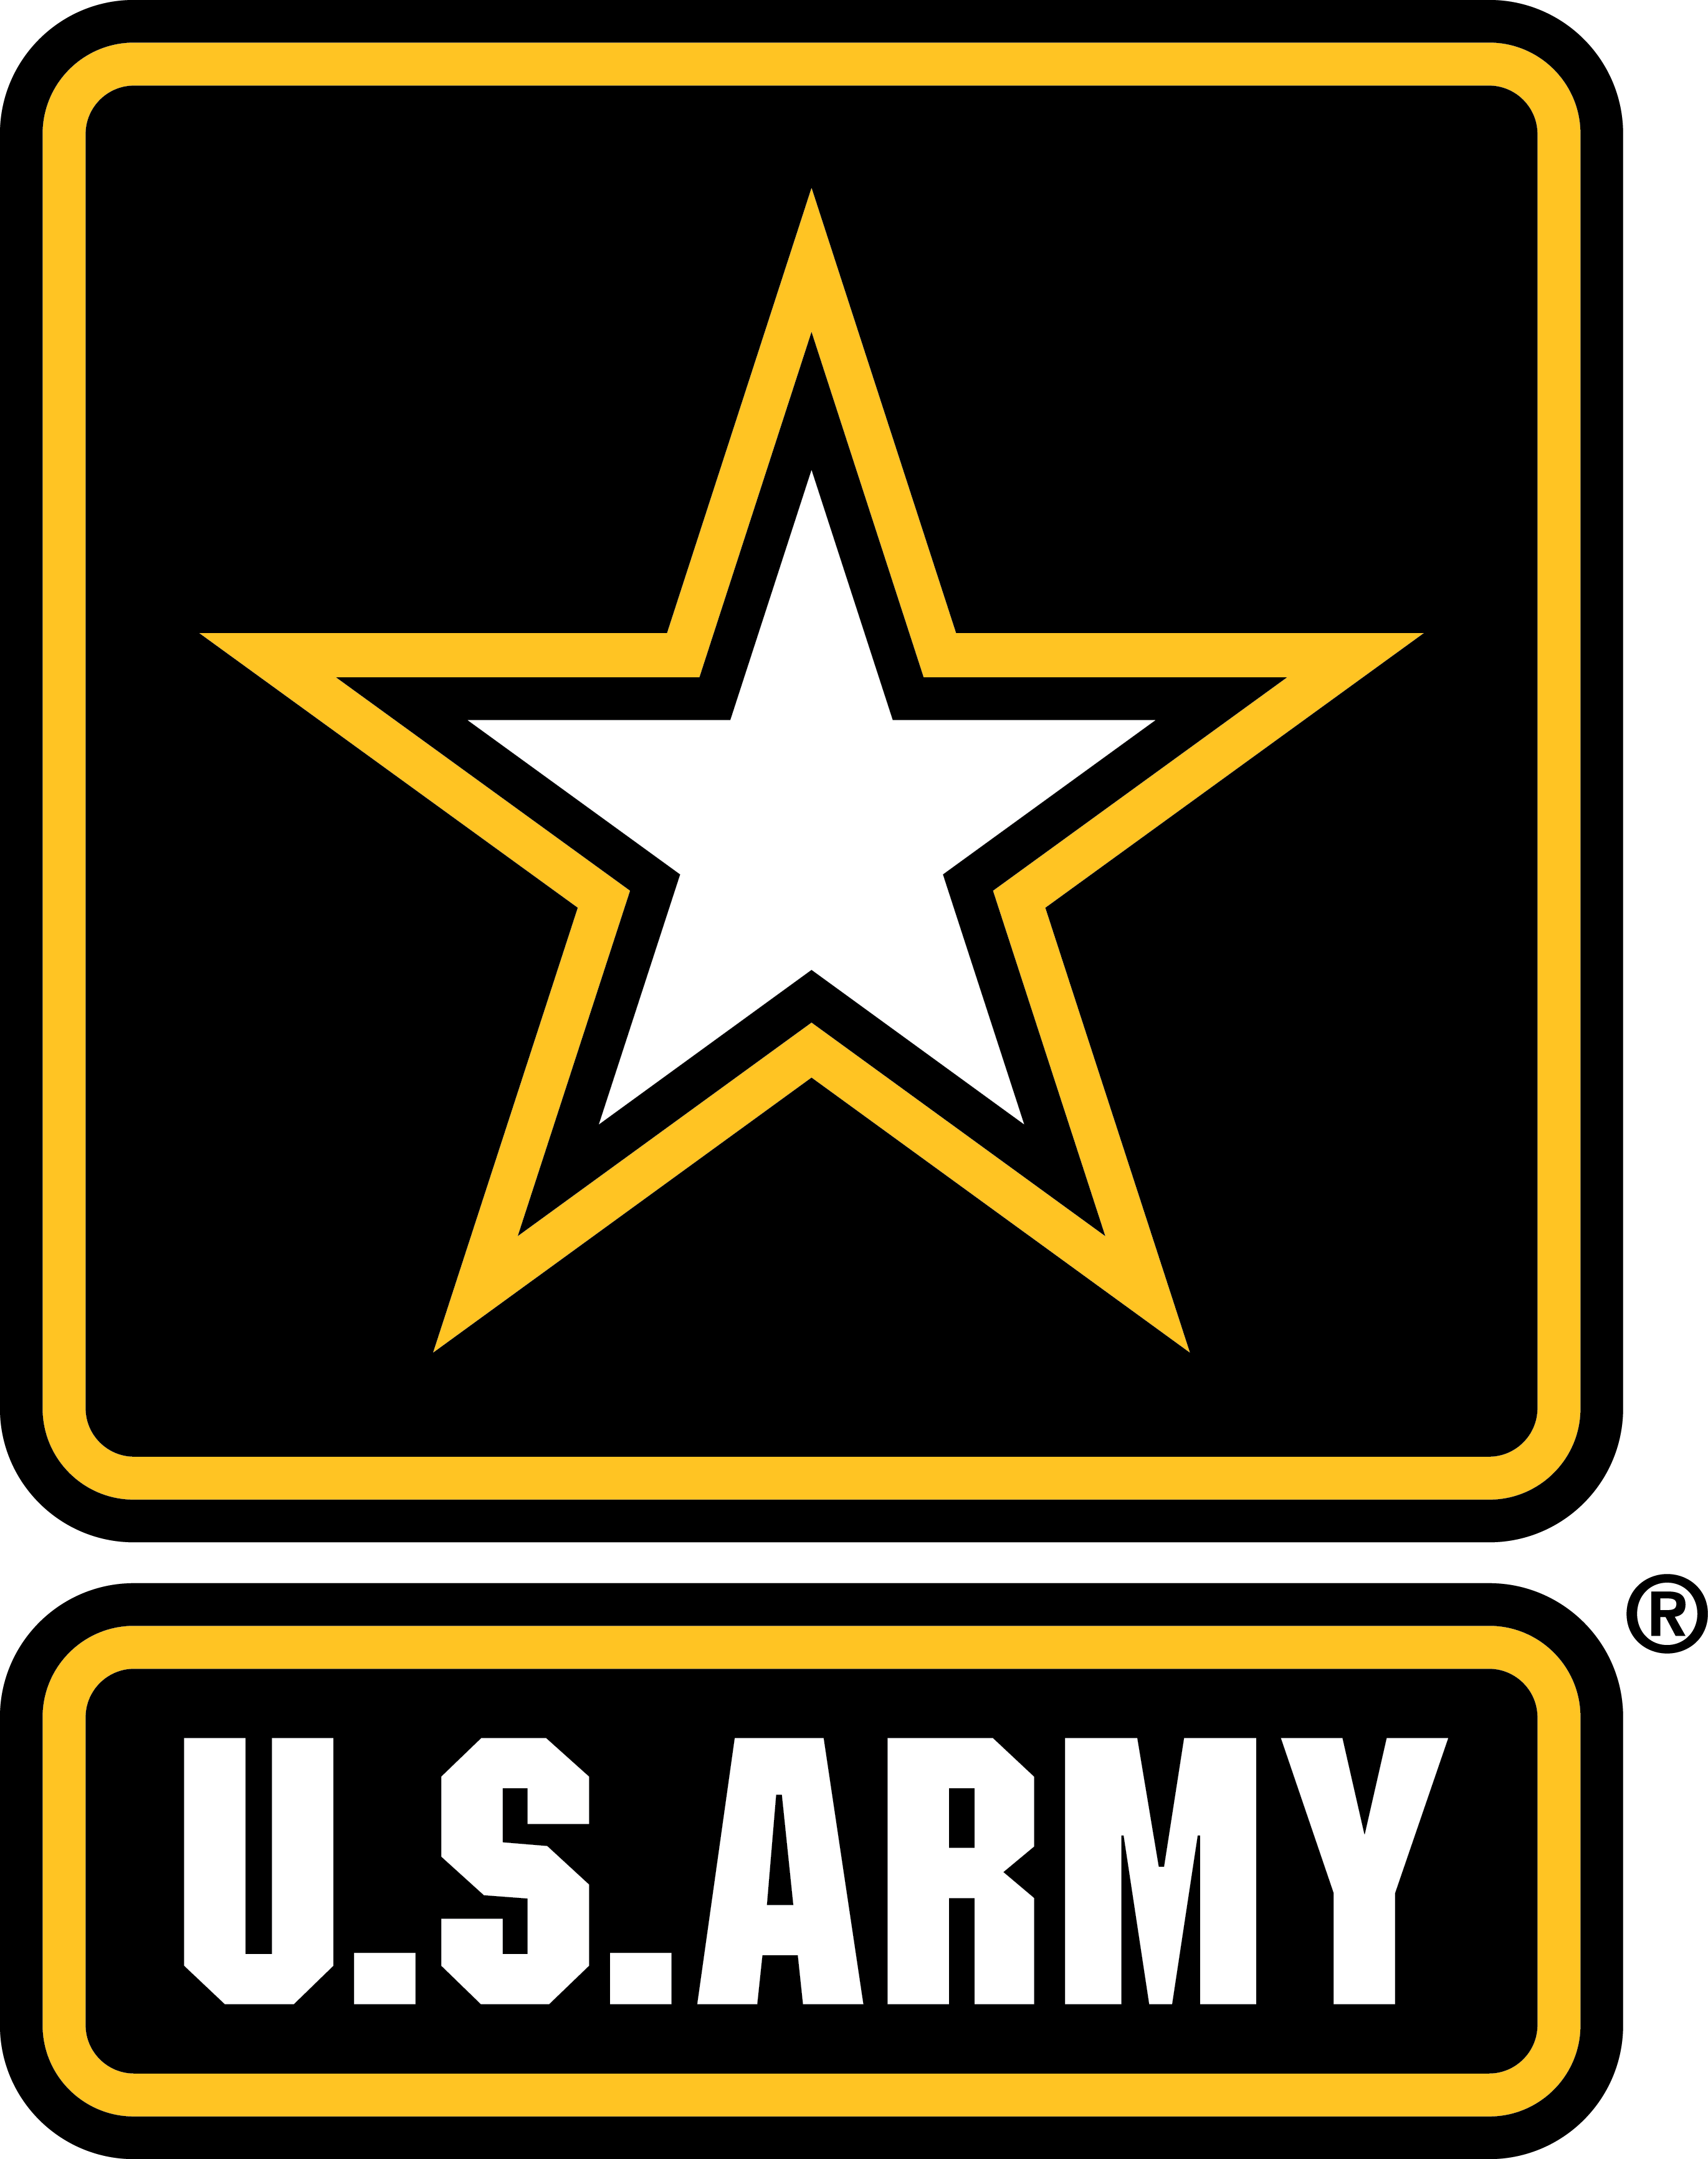 Symbols Insignias Of The United States Army